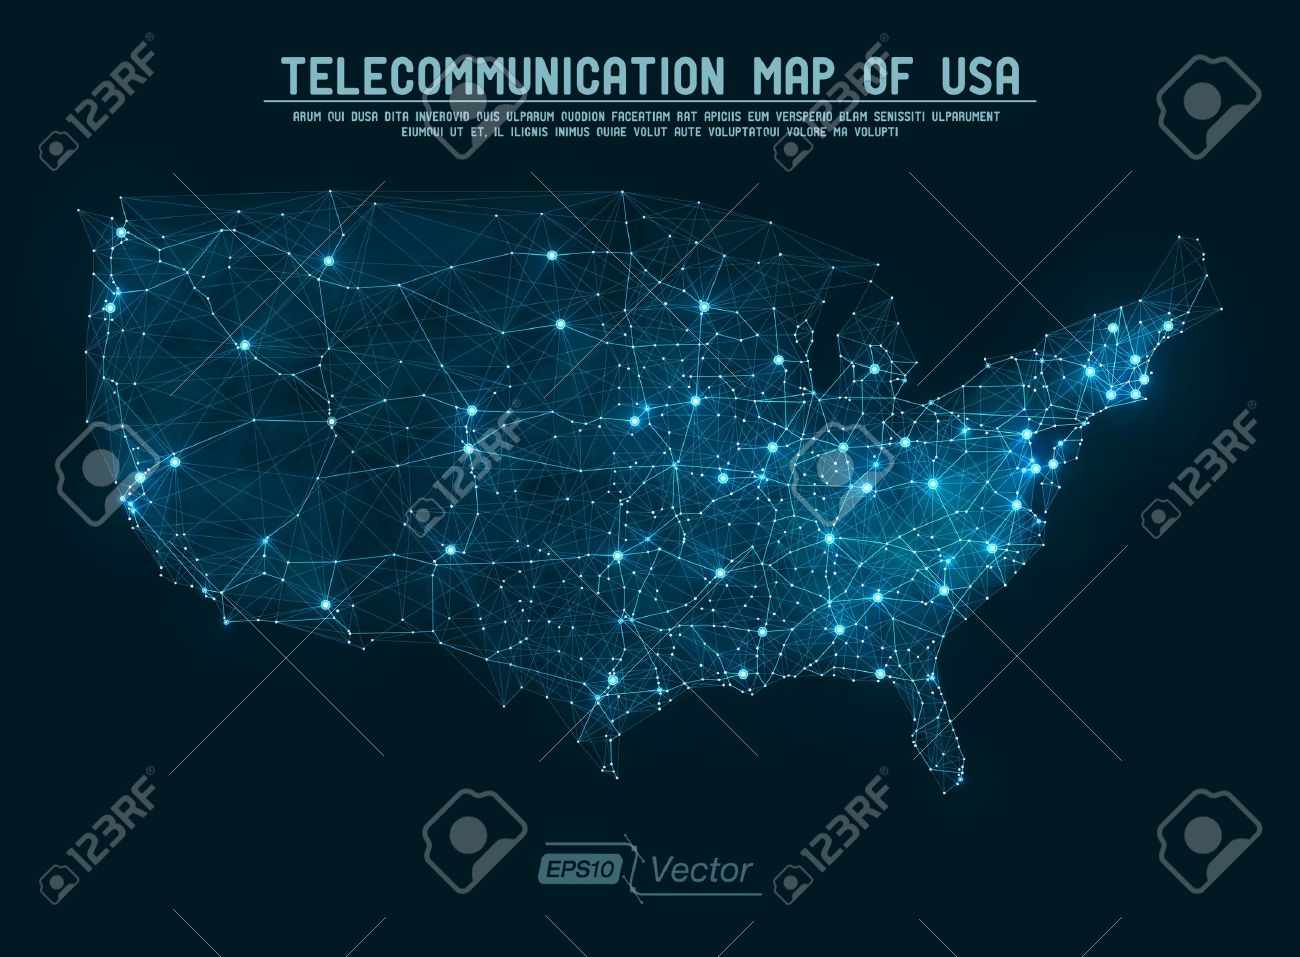 Abstract Telecommunication Network Map USA Royalty Free Cliparts - Map os usa